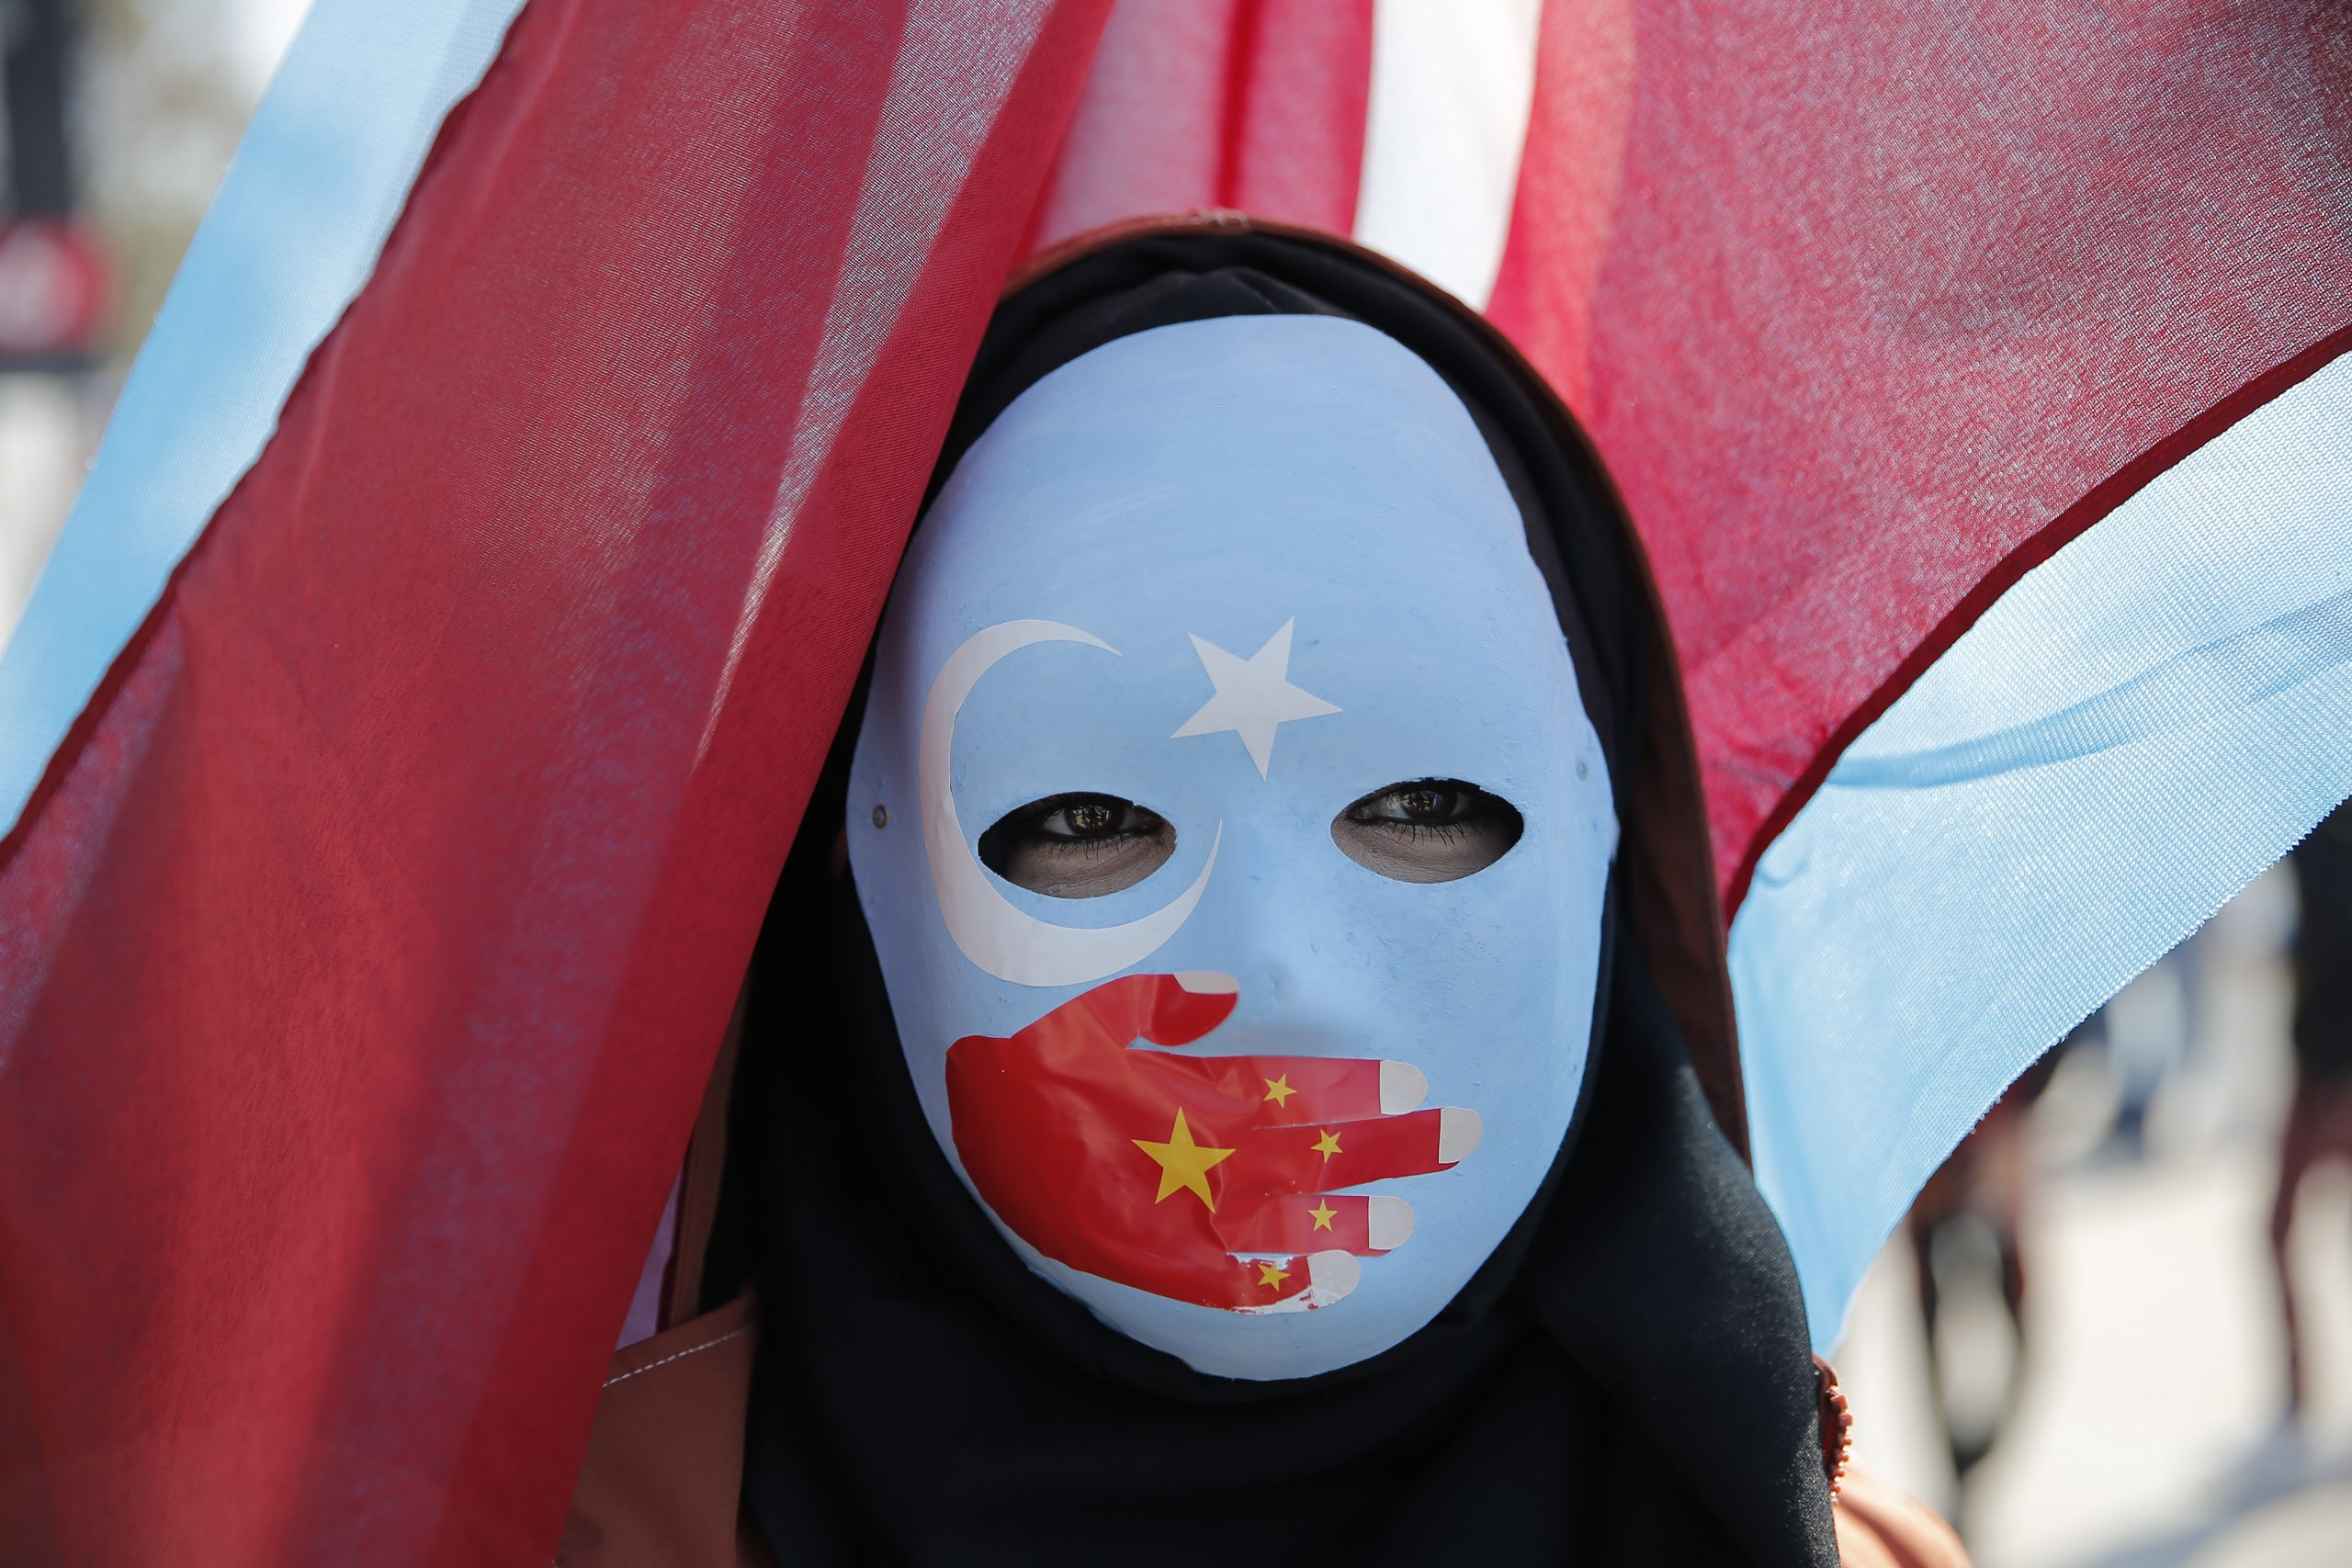 Pompeo says China's policies on Muslims in Xinjiang amount to 'genocide'